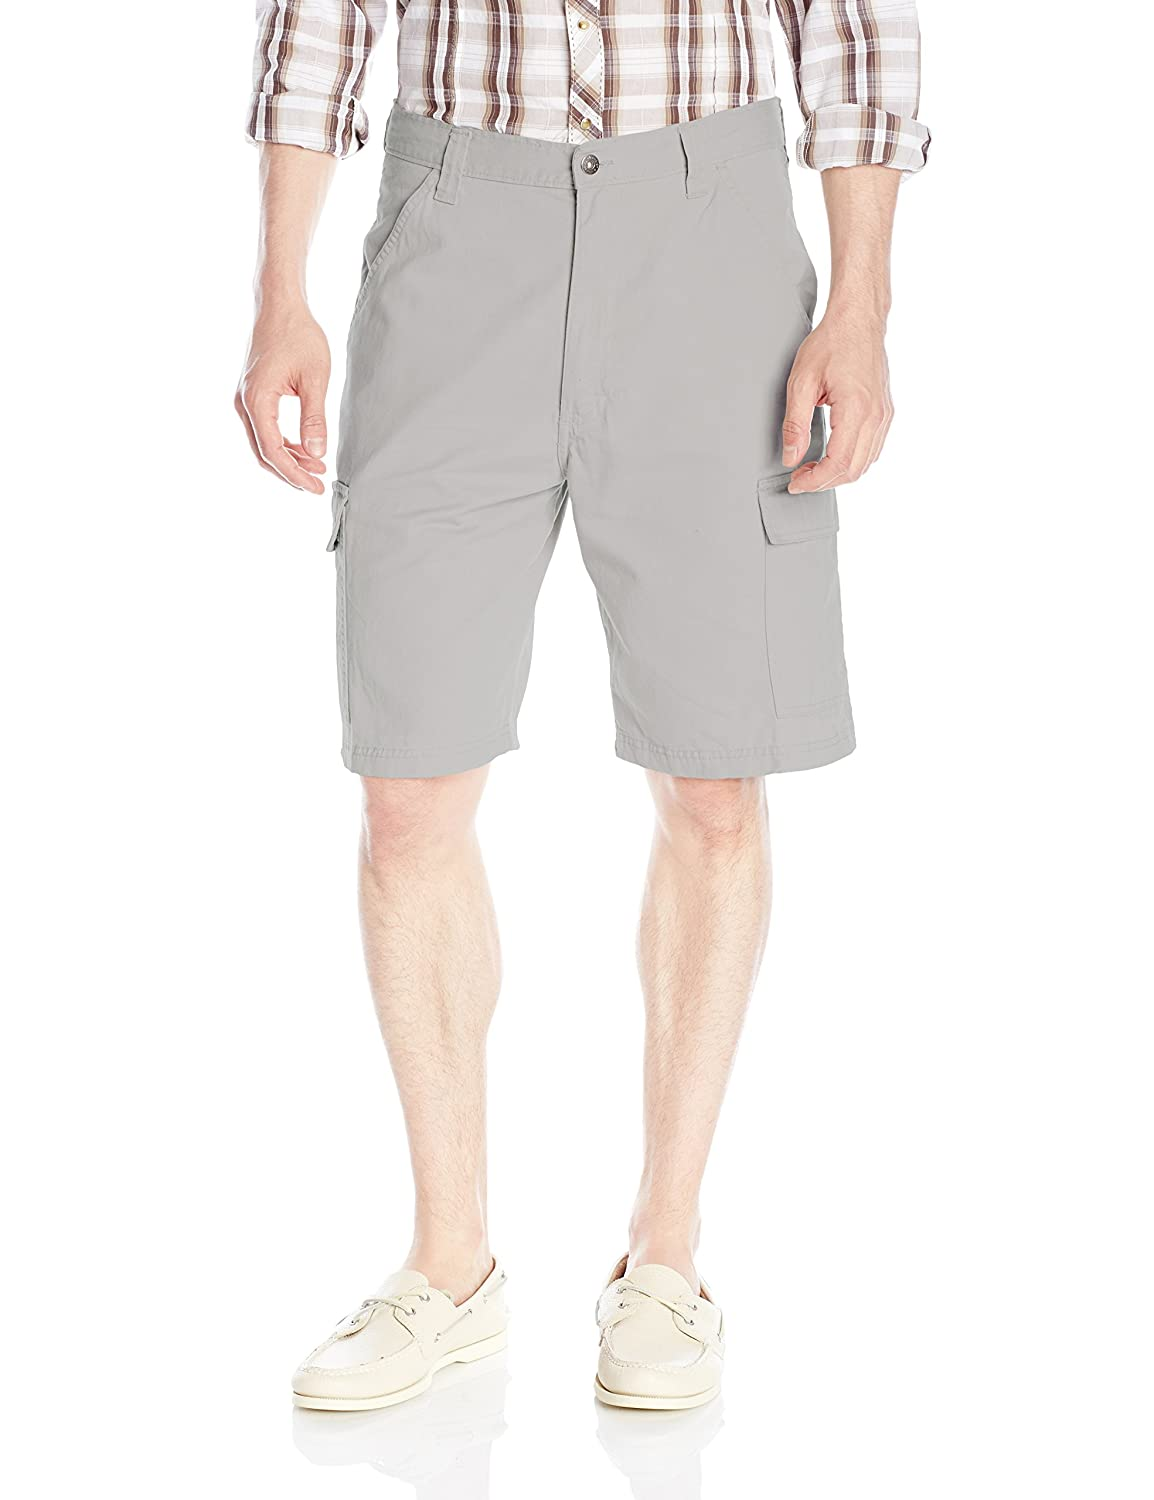 Wrangler Authentics Mens Classic Relaxed Fit Cargo Short